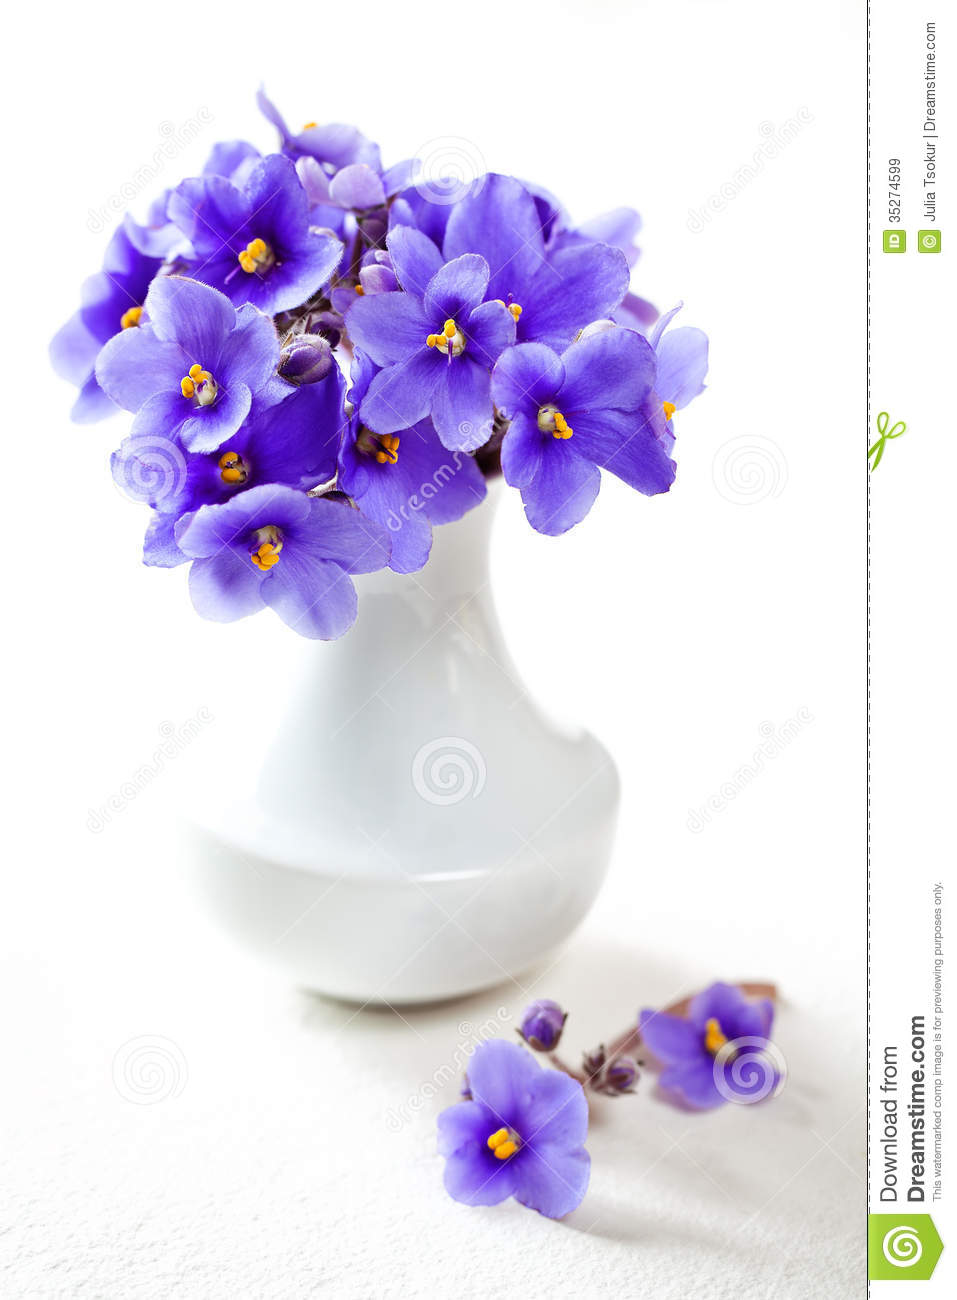 Cute Violet Flowers Royalty Free Stock Images Image 35274599